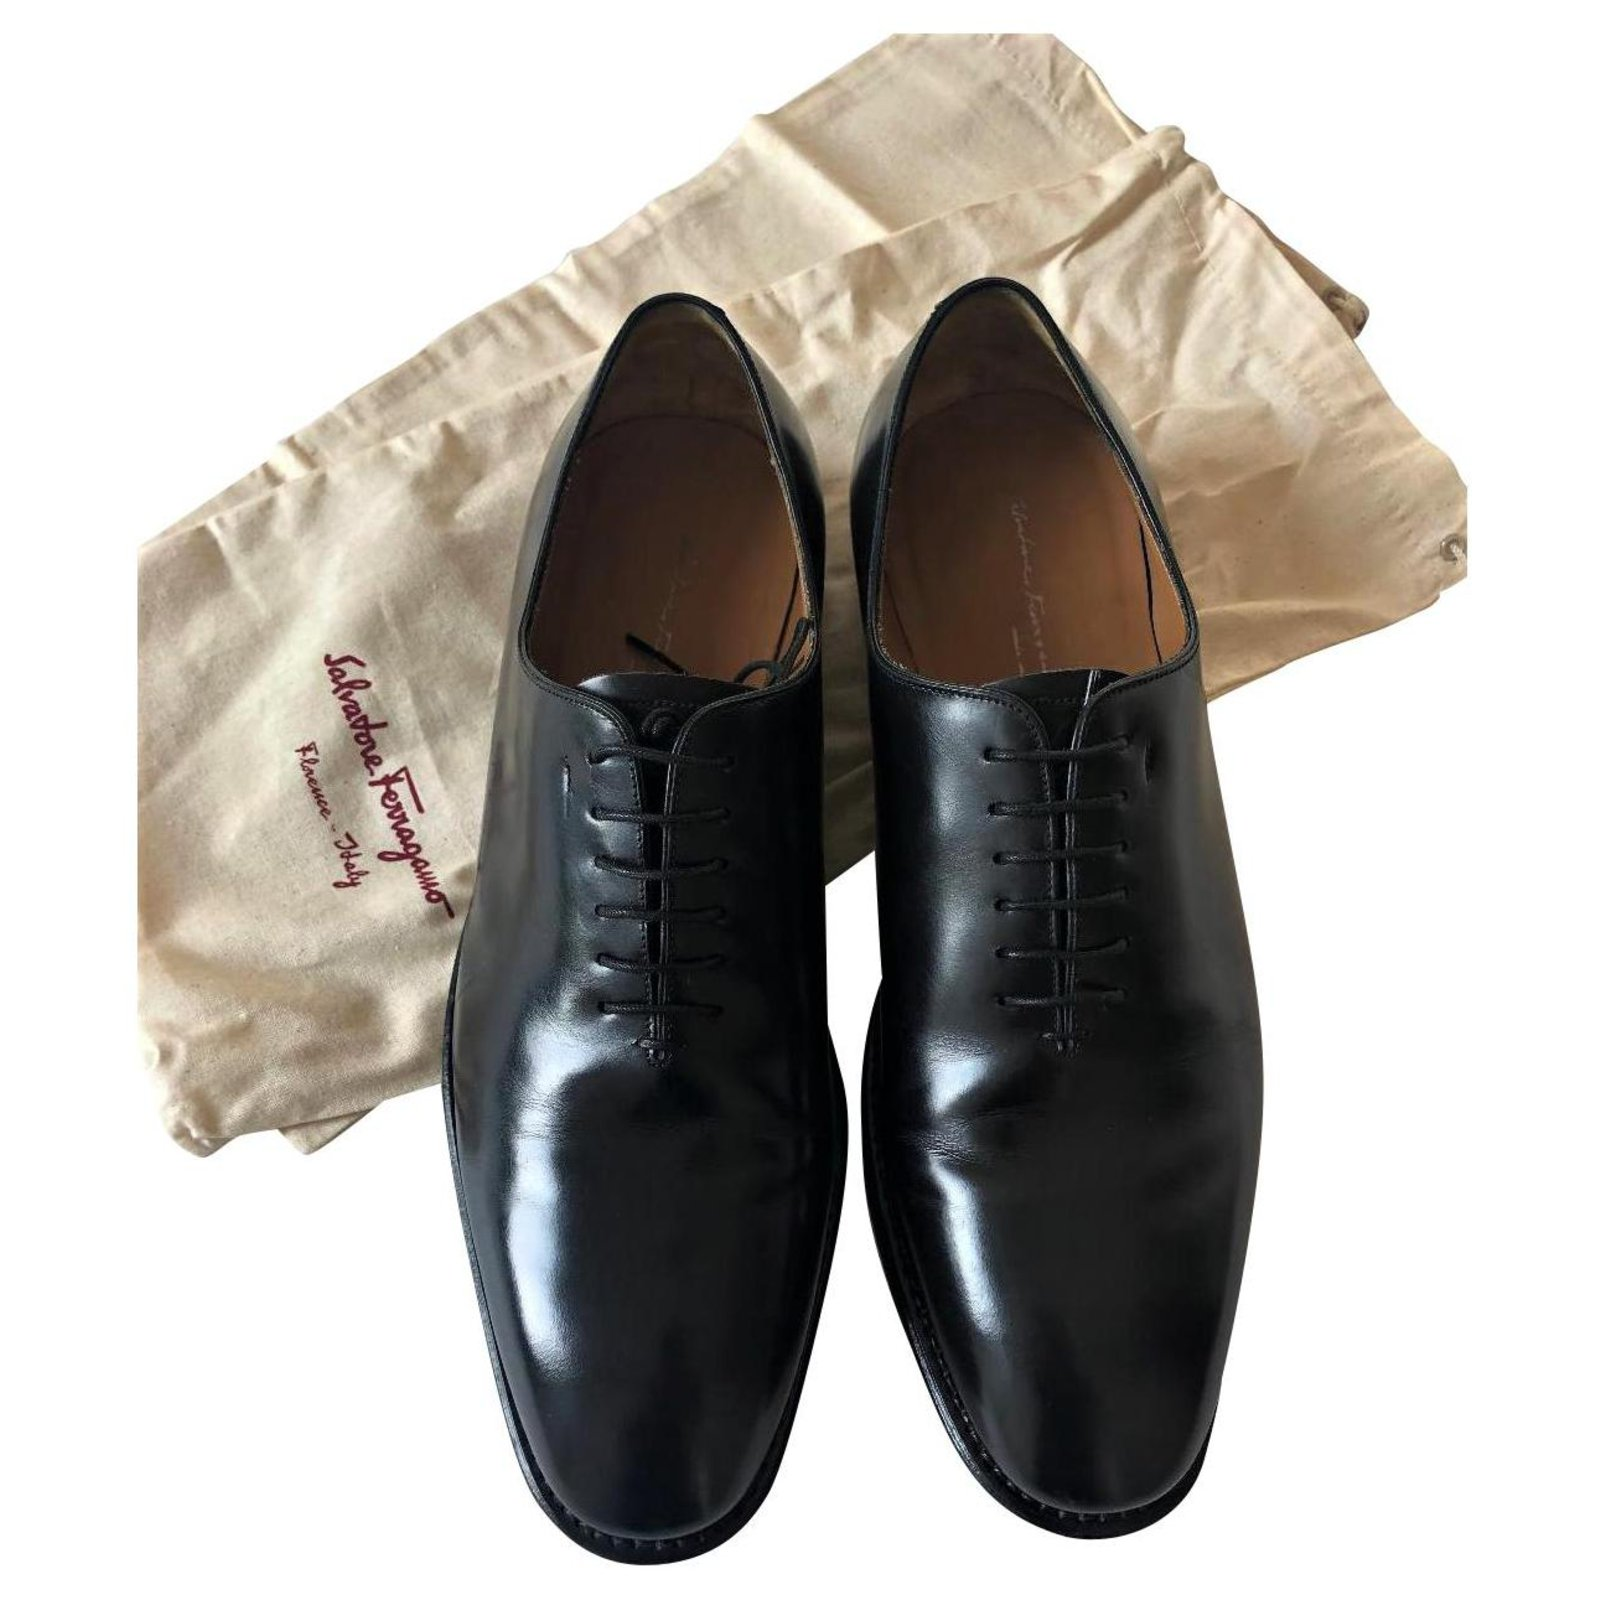 FORMAL LACE UP SHOES Lace ups Leather